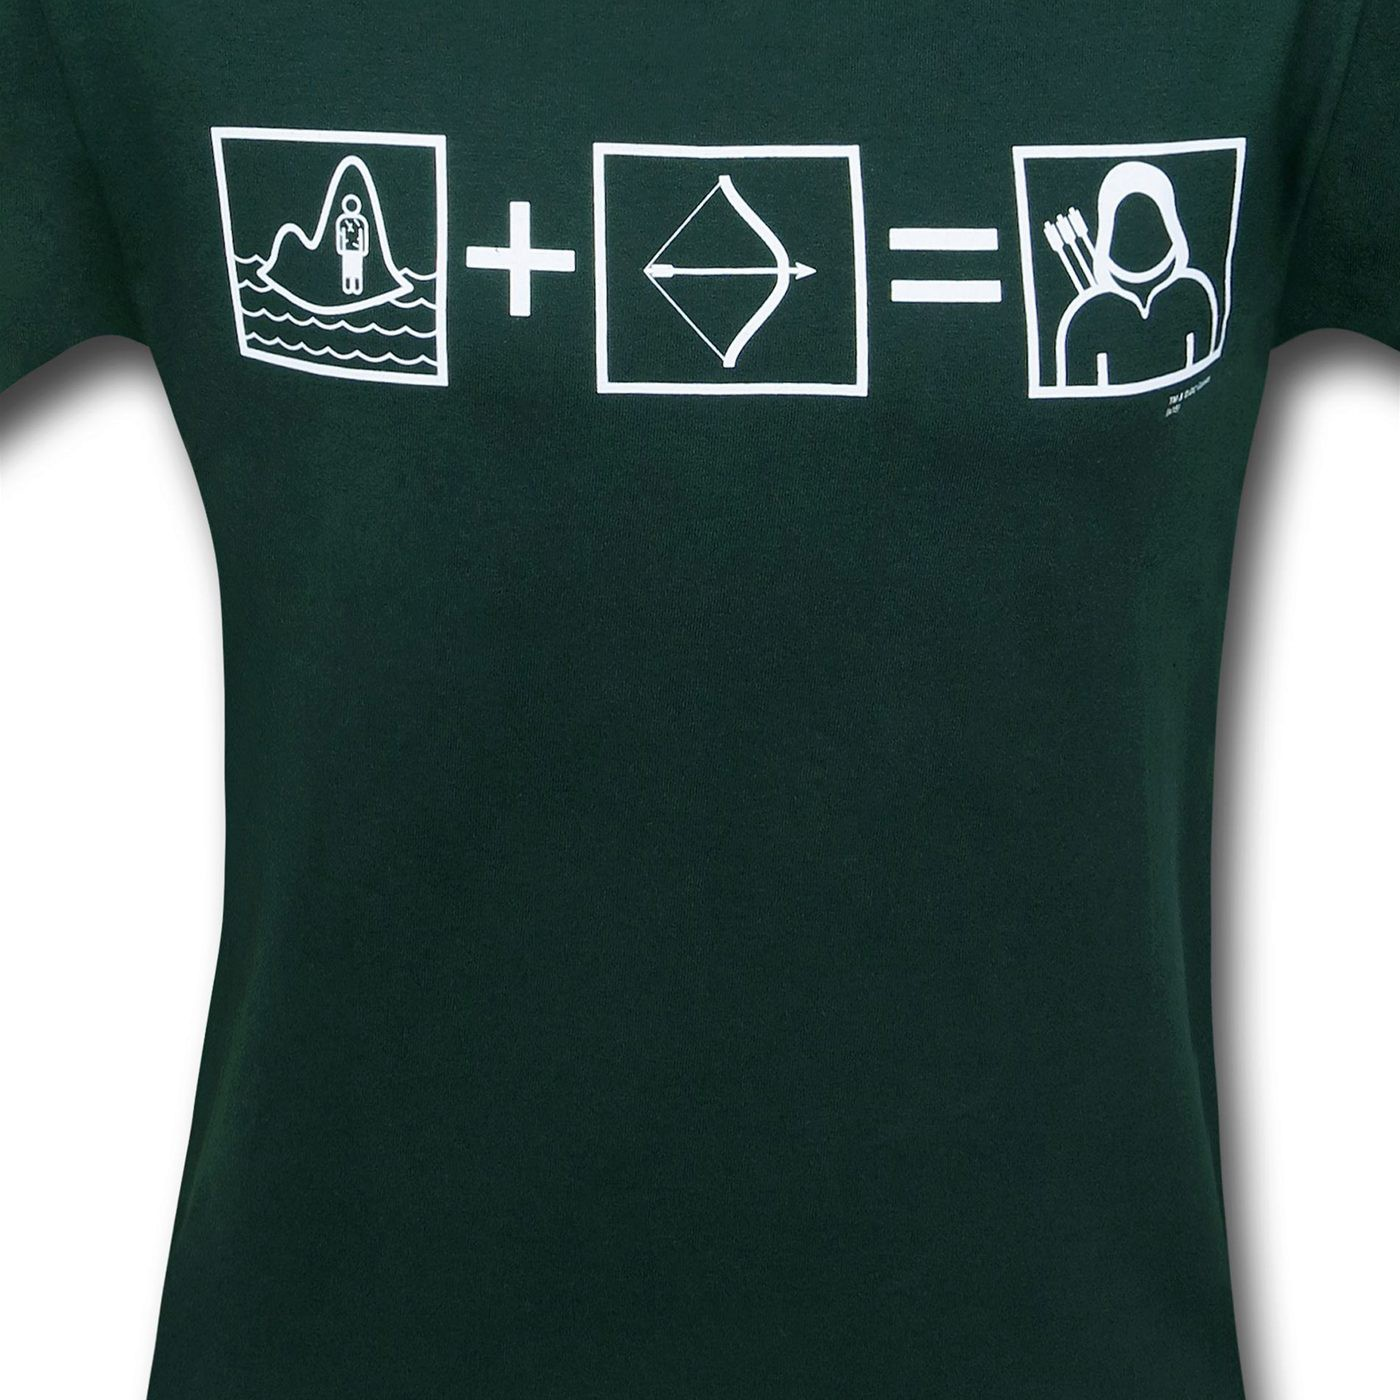 Arrow Equations T-Shirt